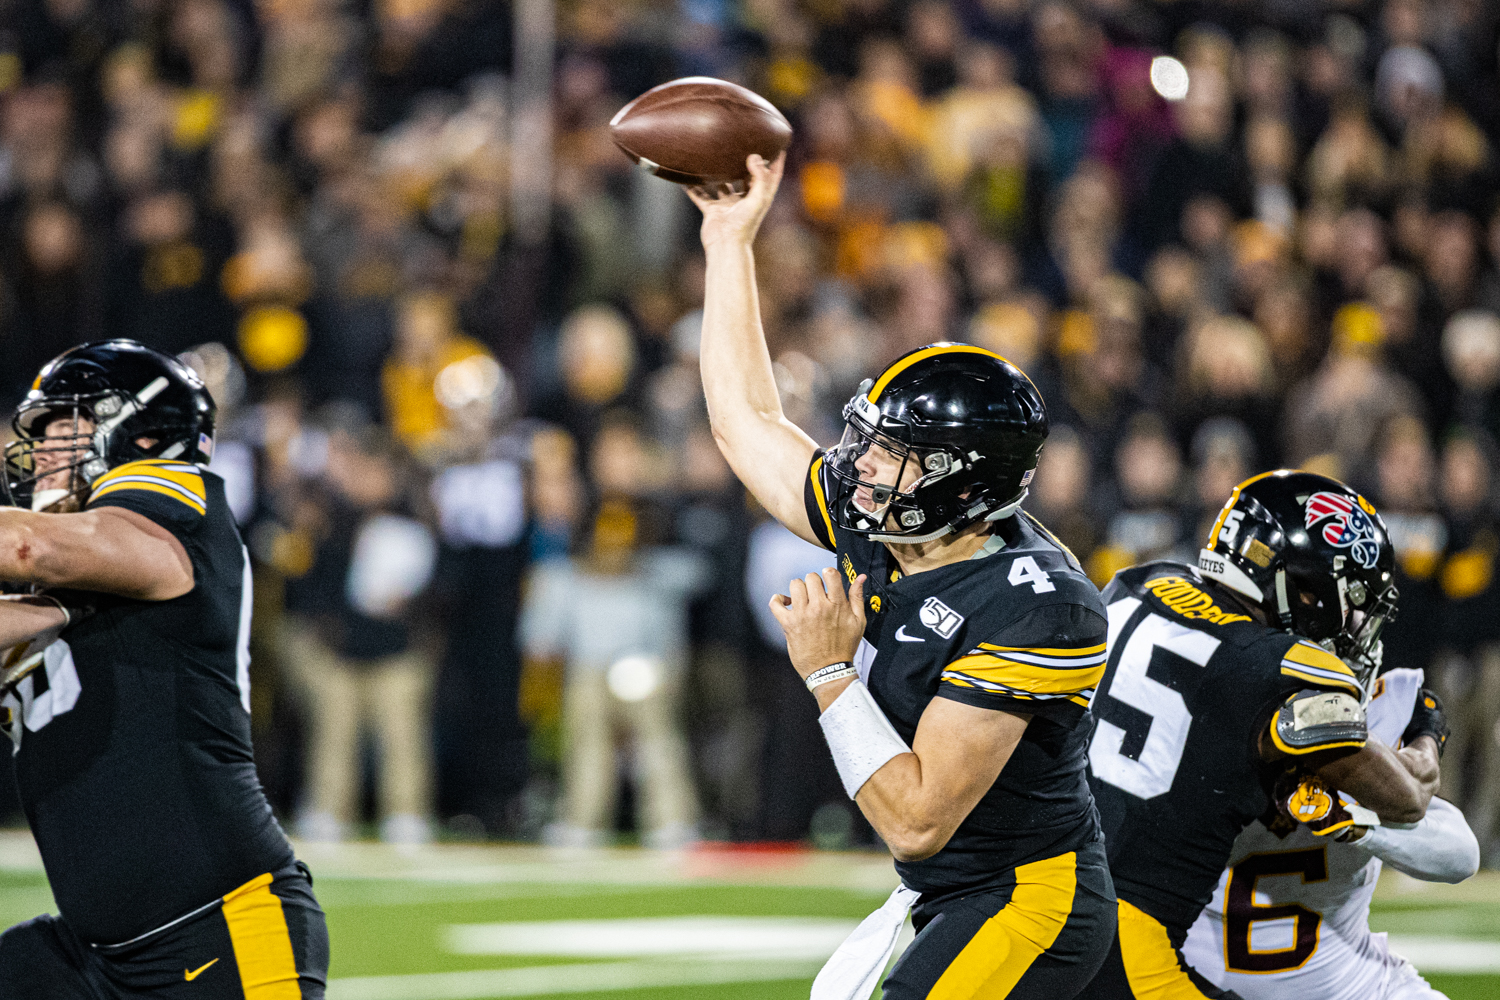 Iowa quarterback Nate Stanley makes a pass during a football game between Iowa and Minnesota at Kinnick Stadium on Saturday, Nov. 16, 2019. The Hawkeyes defeated the Gophers, 23-19. (Shivansh Ahuja/The Daily Iowan)